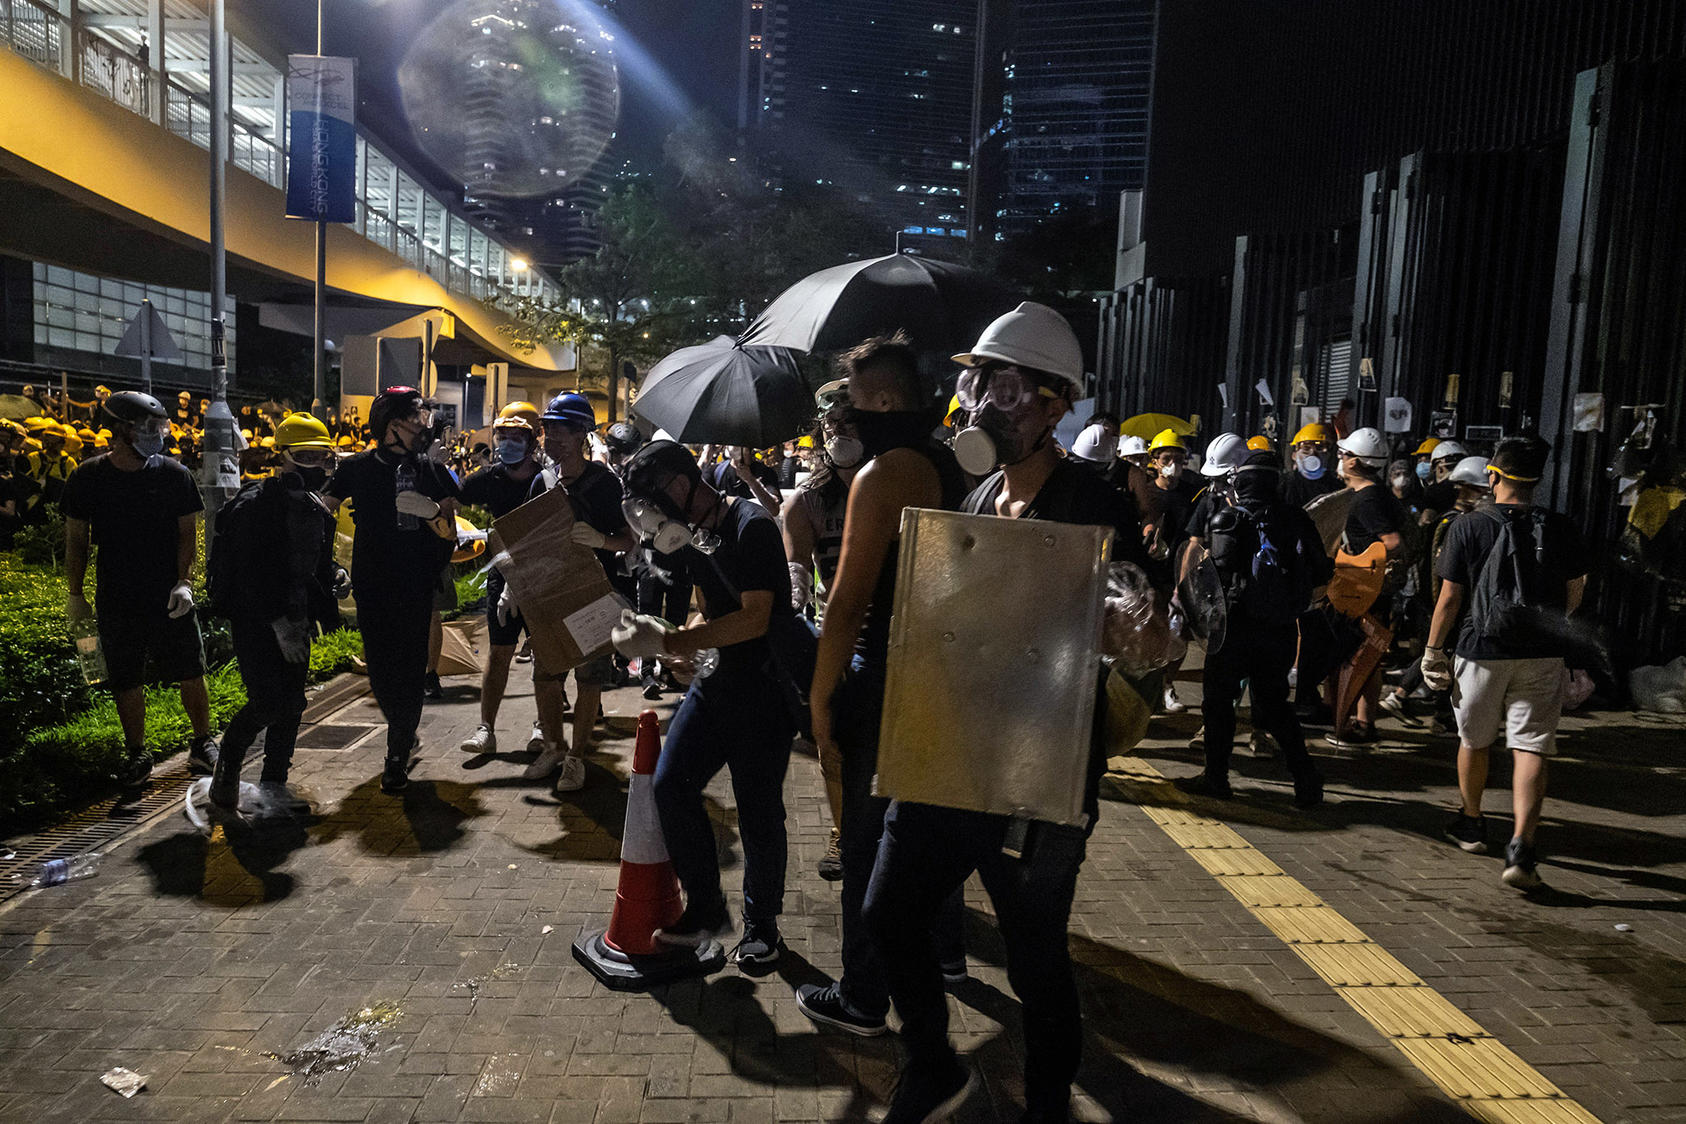 Pro-democracy demonstrators prepare to face riot police who fired tear gas outside Hong Kong's Legislative Council chambers after hundreds of protesters stormed the offices. (Lam Yik Fei/The New York Times)